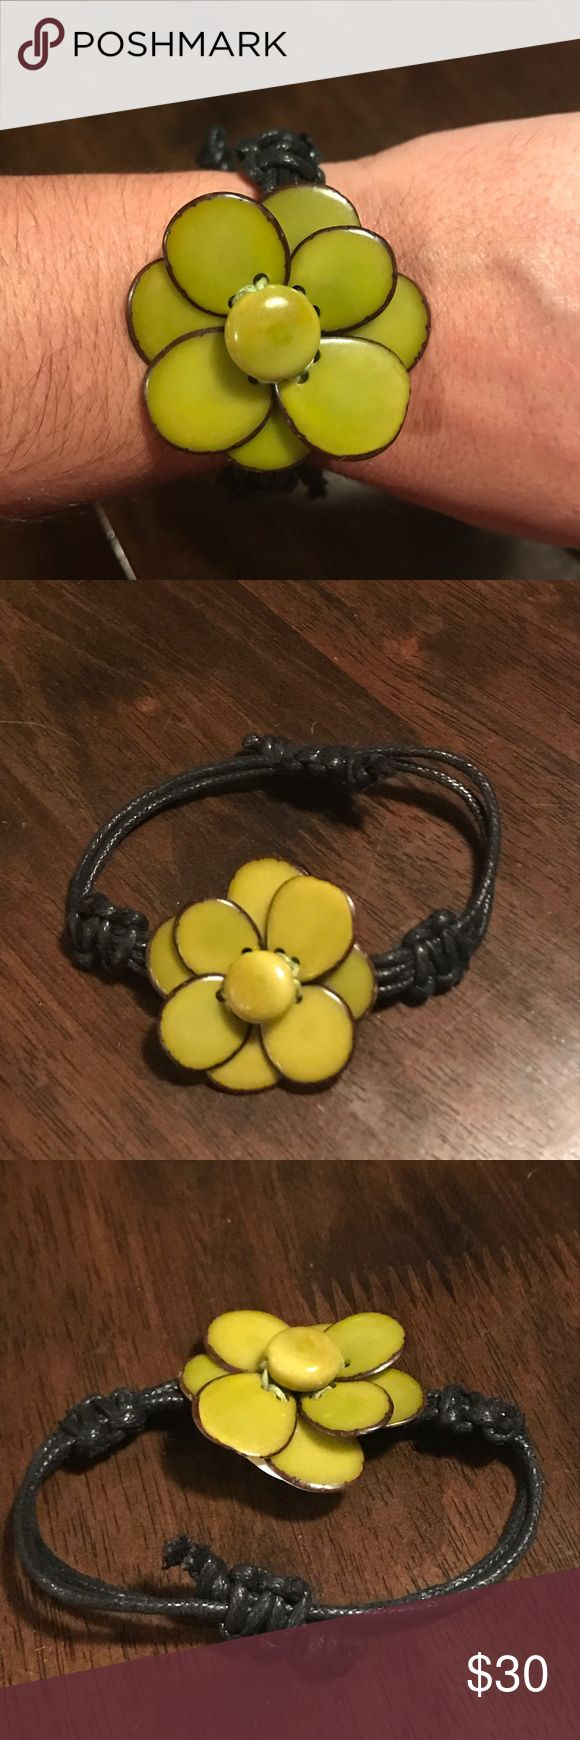 A beautiful handmade Tagua flower bracelet This bracelet is a flower made of various pieces of Tagua which comes from the seed of the tropical palm tree fruit. It is hand picked, carved, colored and designed into a flower and placed on a black leather slip knot bracelet. Jewelry Bracelets